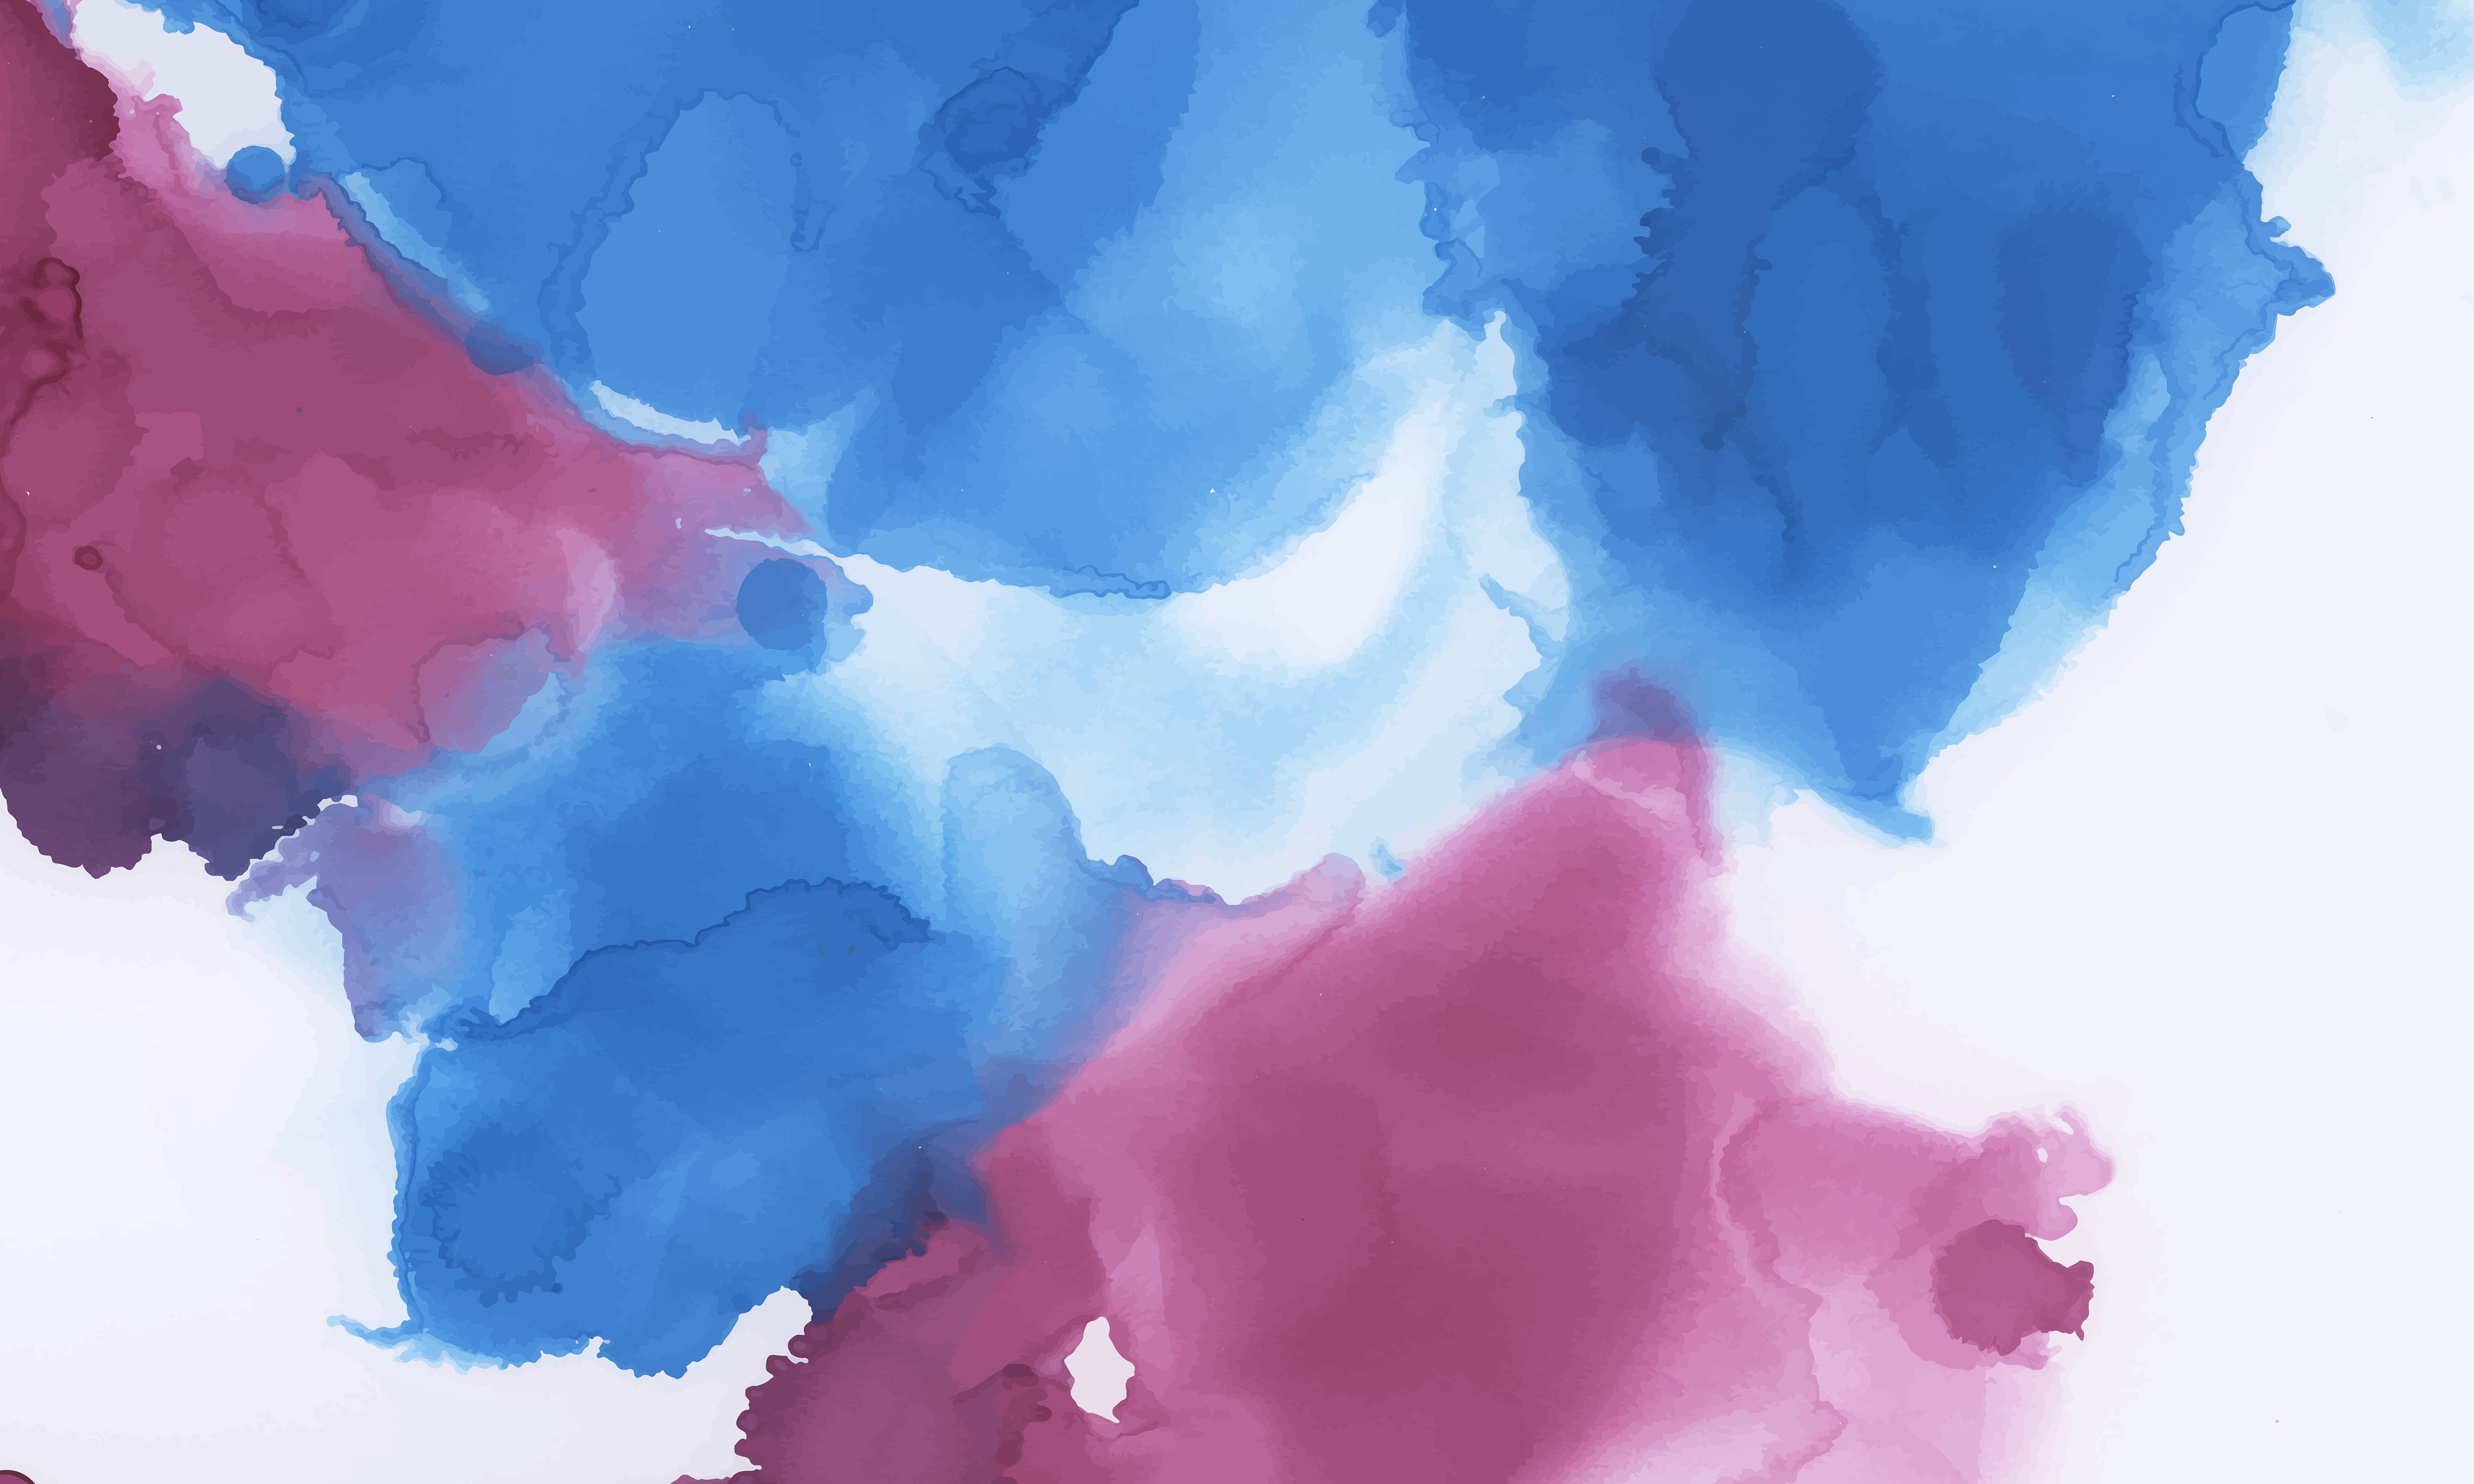 colorful ink watercolor textured background